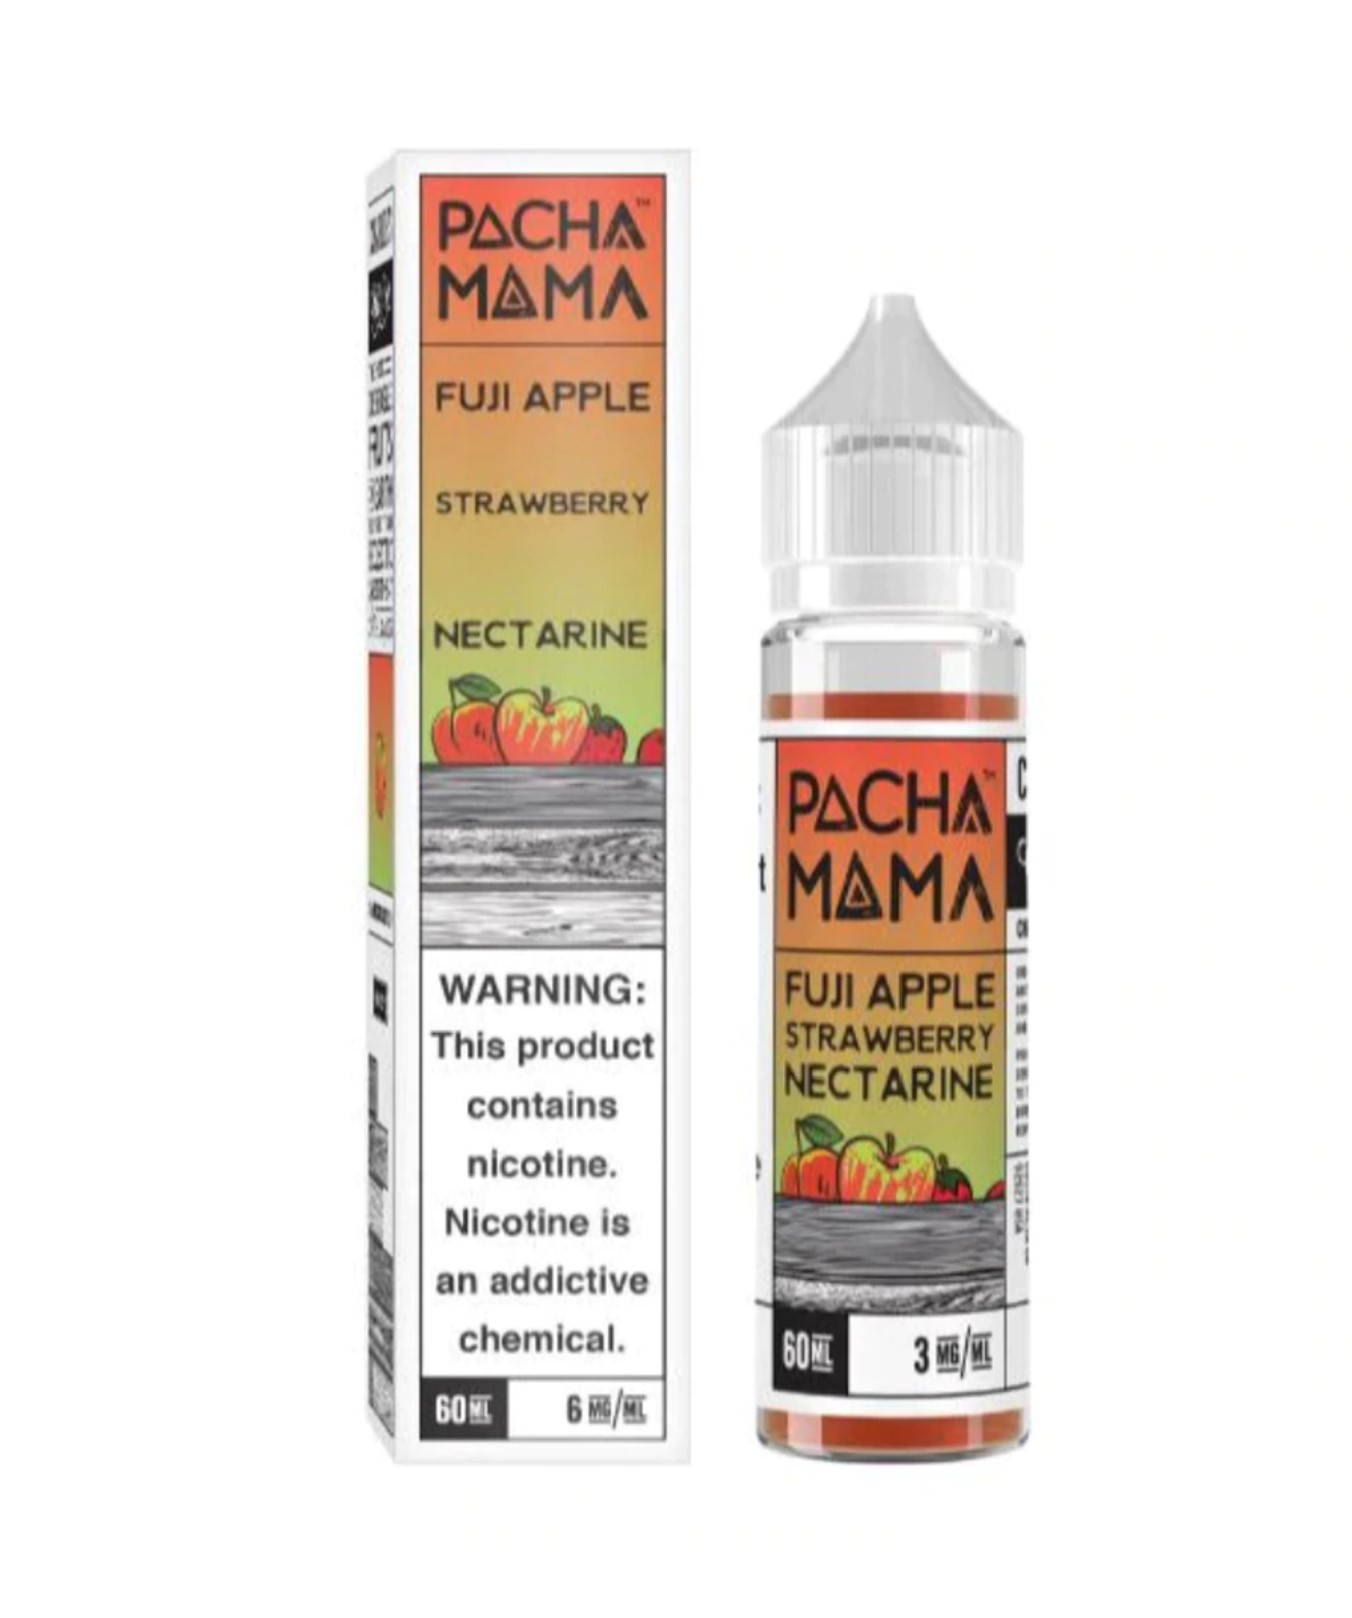 Pachamama Fuji Apple Strawberry Nectarine 60ml 3mg